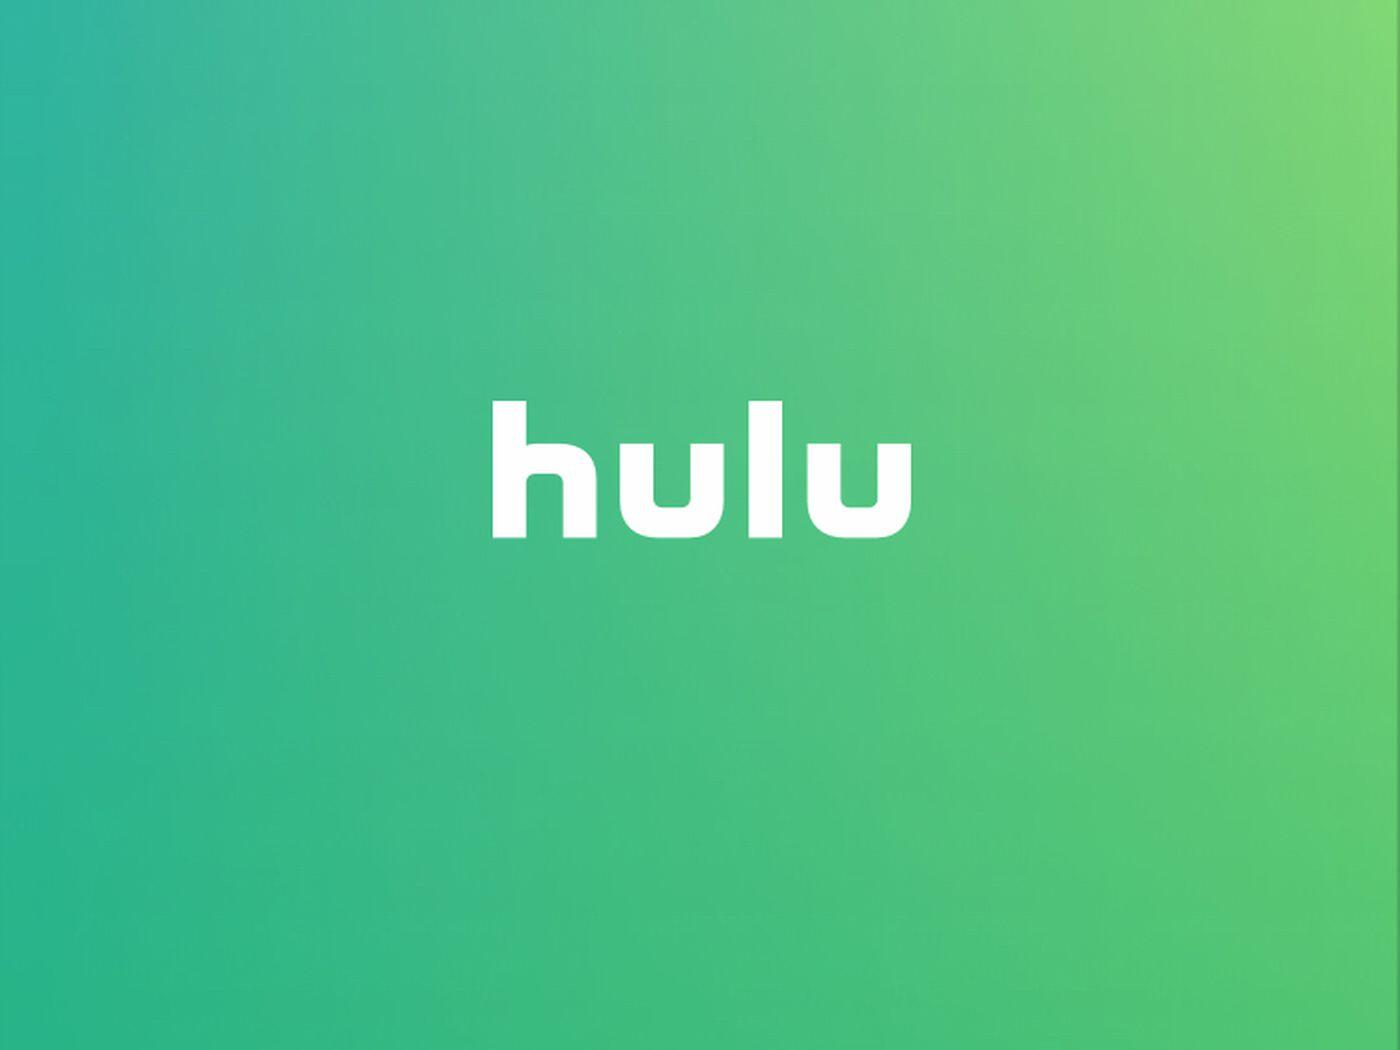 Hulu Logo Streaming Platform